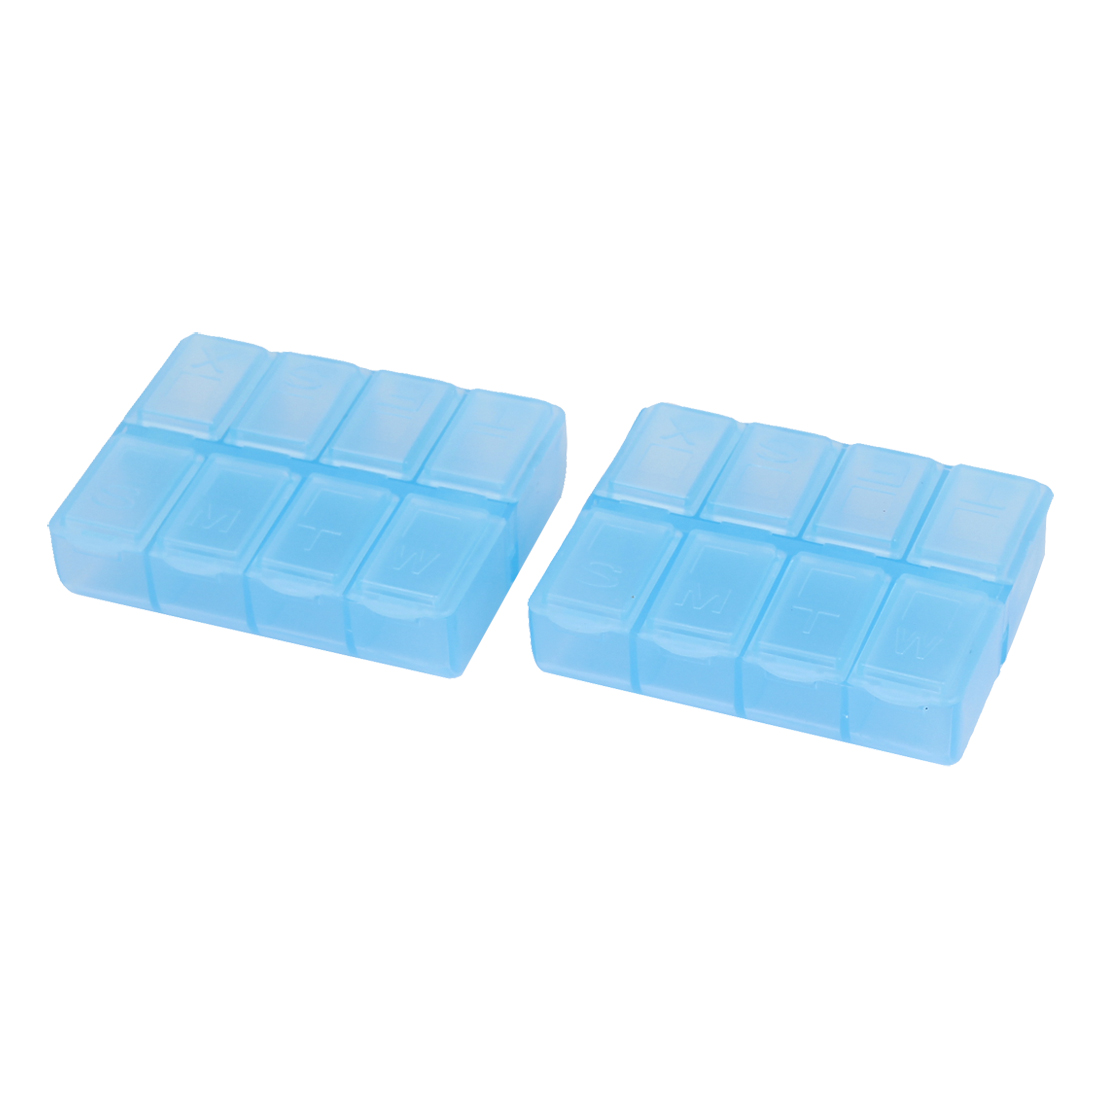 2Pcs Light Blue Plastic Rectangle 8 Compartment Pill Storage Case Box Holder